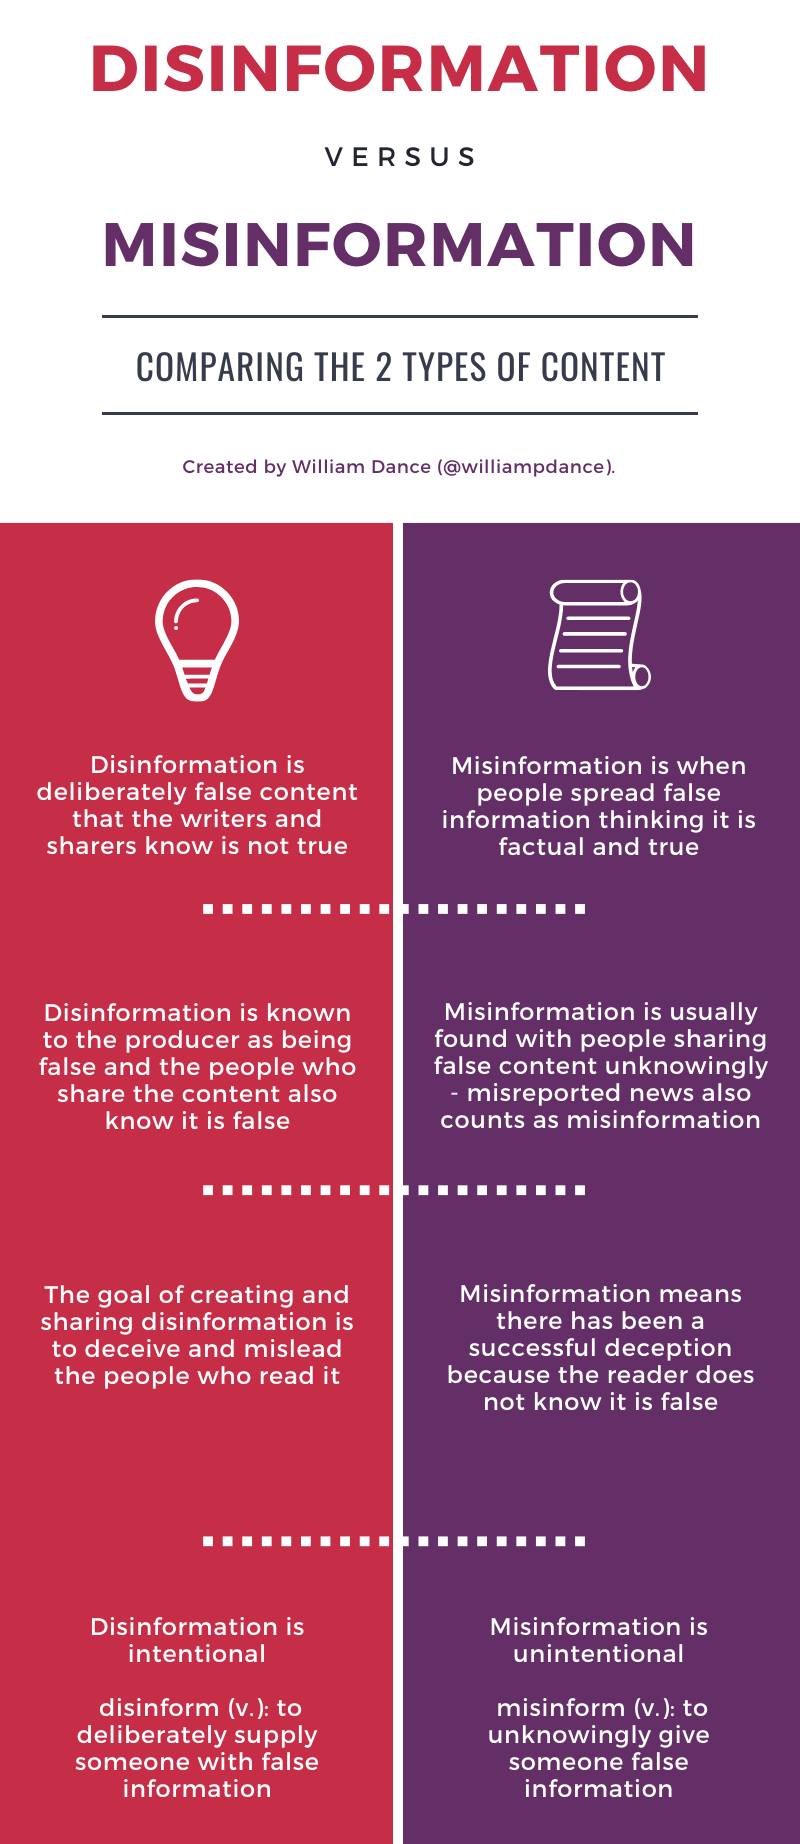 An infographic explaining the key differences between disinformation and misinformation